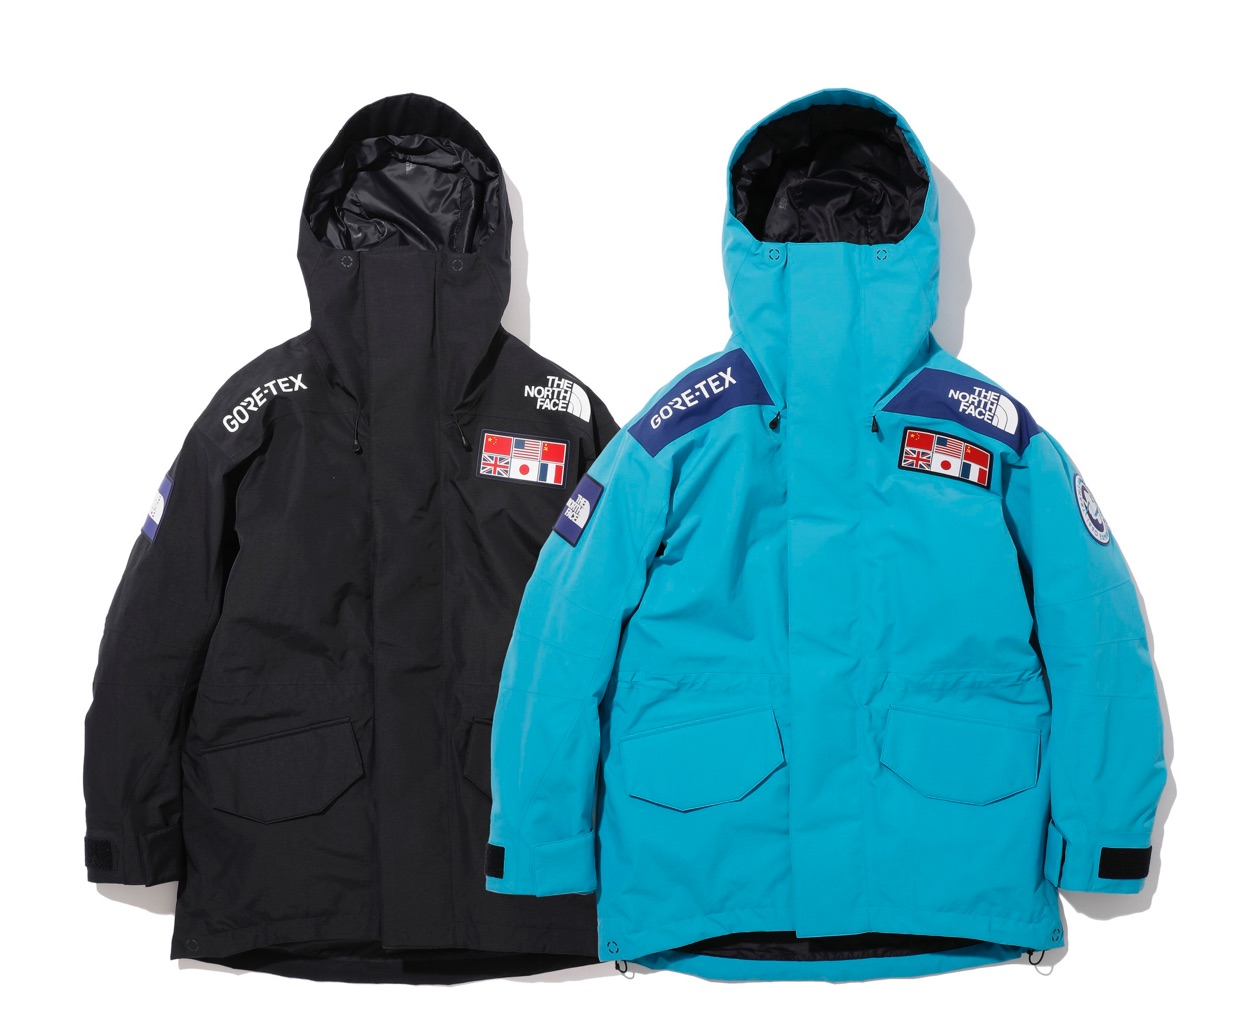 THE NORTH FACE『THINK SOUTH FOR THE NEXT』限定モデルを手に入れよう!